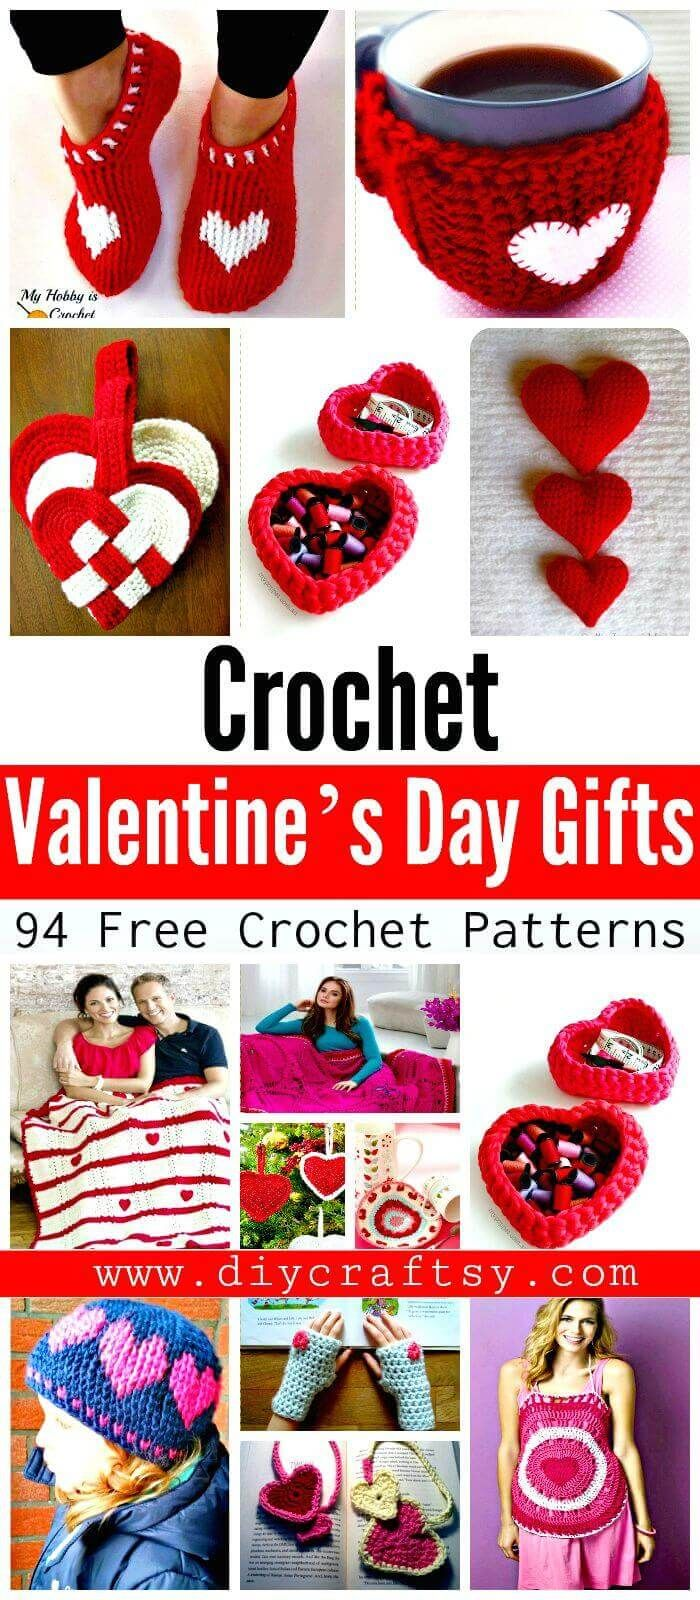 94 Free Crochet Patterns For Valentines Day Gifts Pinterest